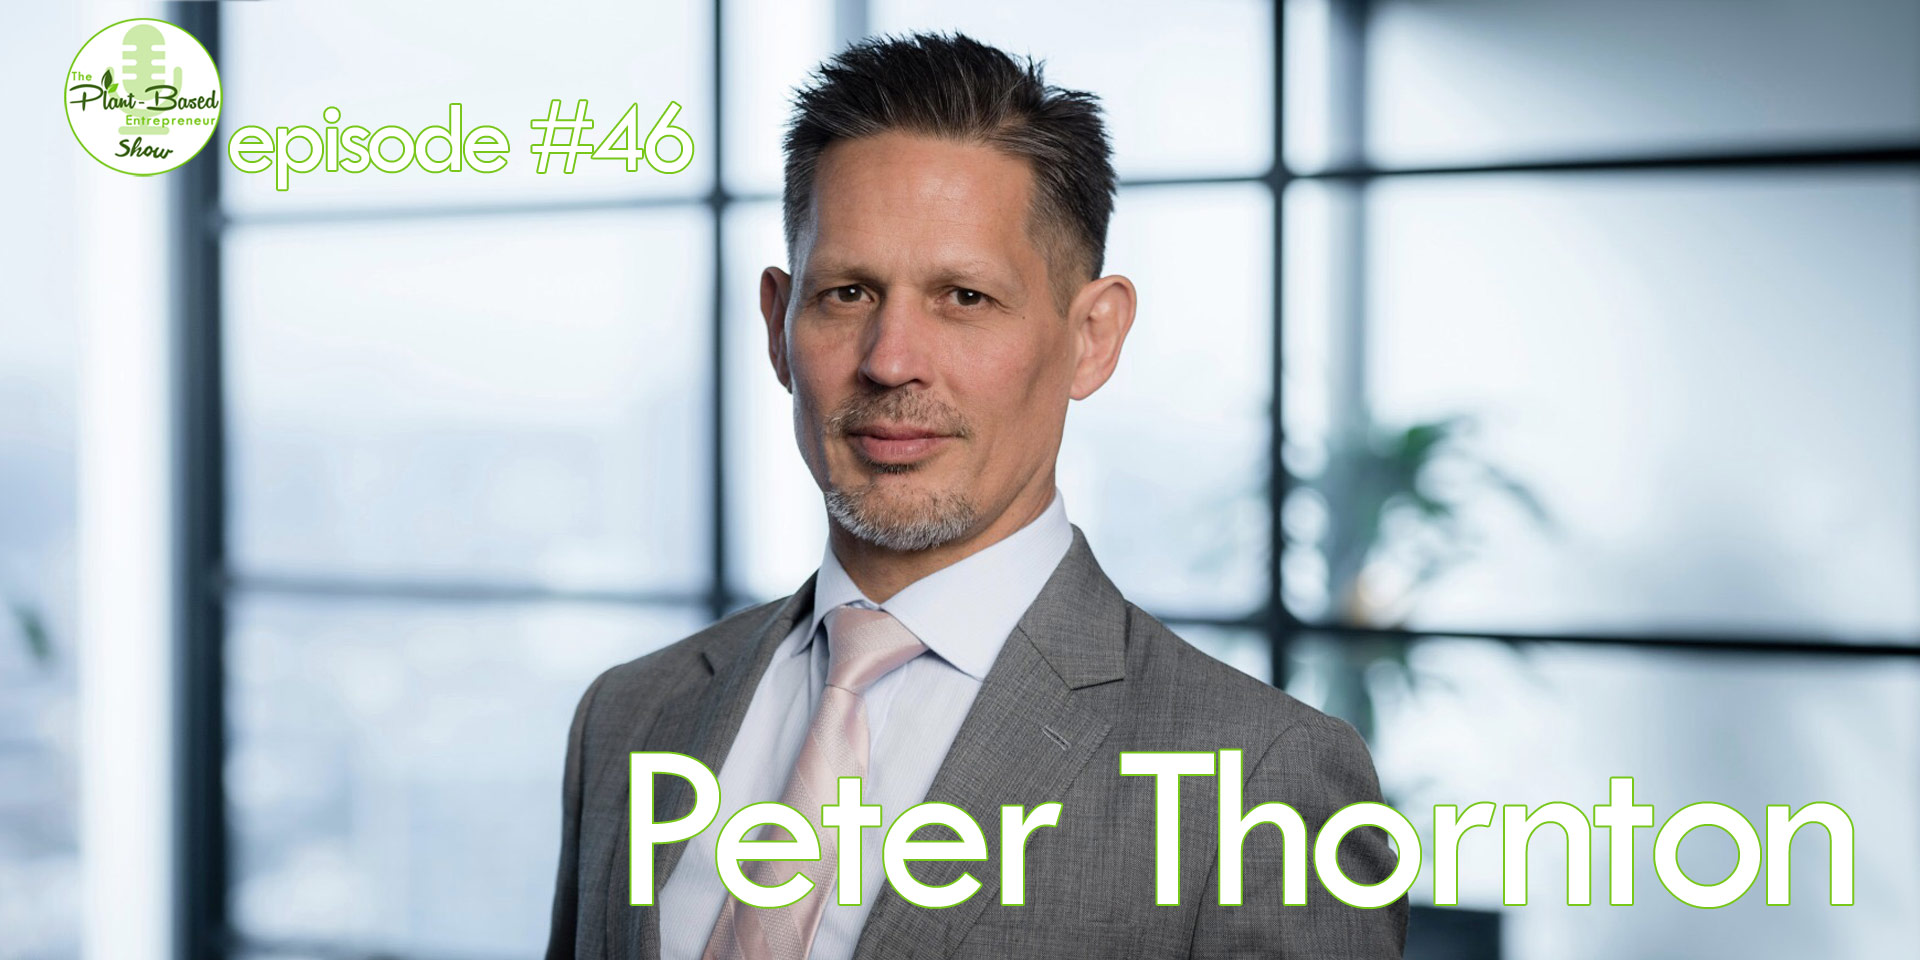 Episode #46 - Peter Thornton